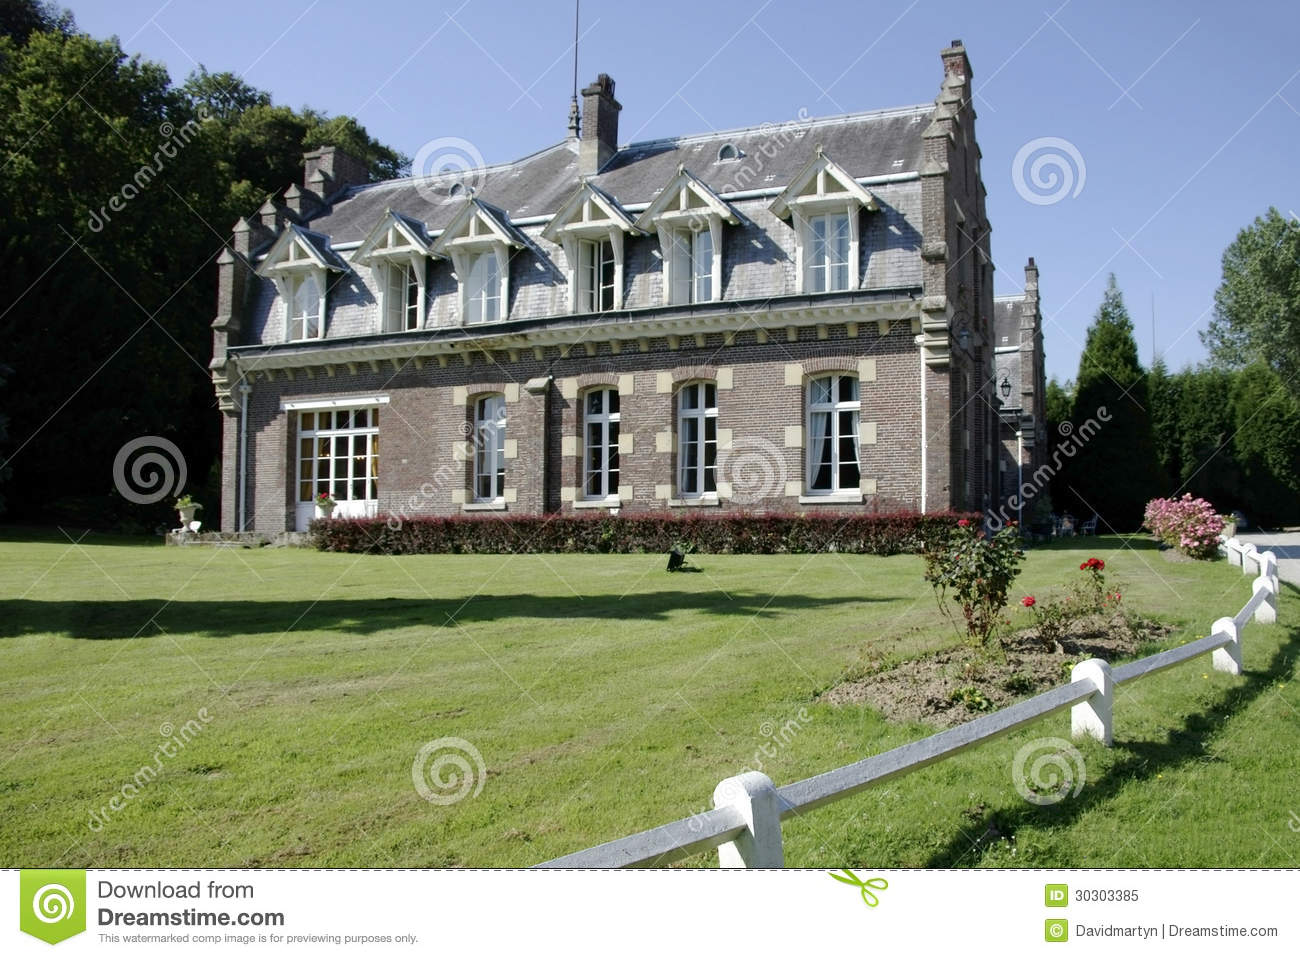 House royalty free stock photo image 30303385 for Design hotel normandie france